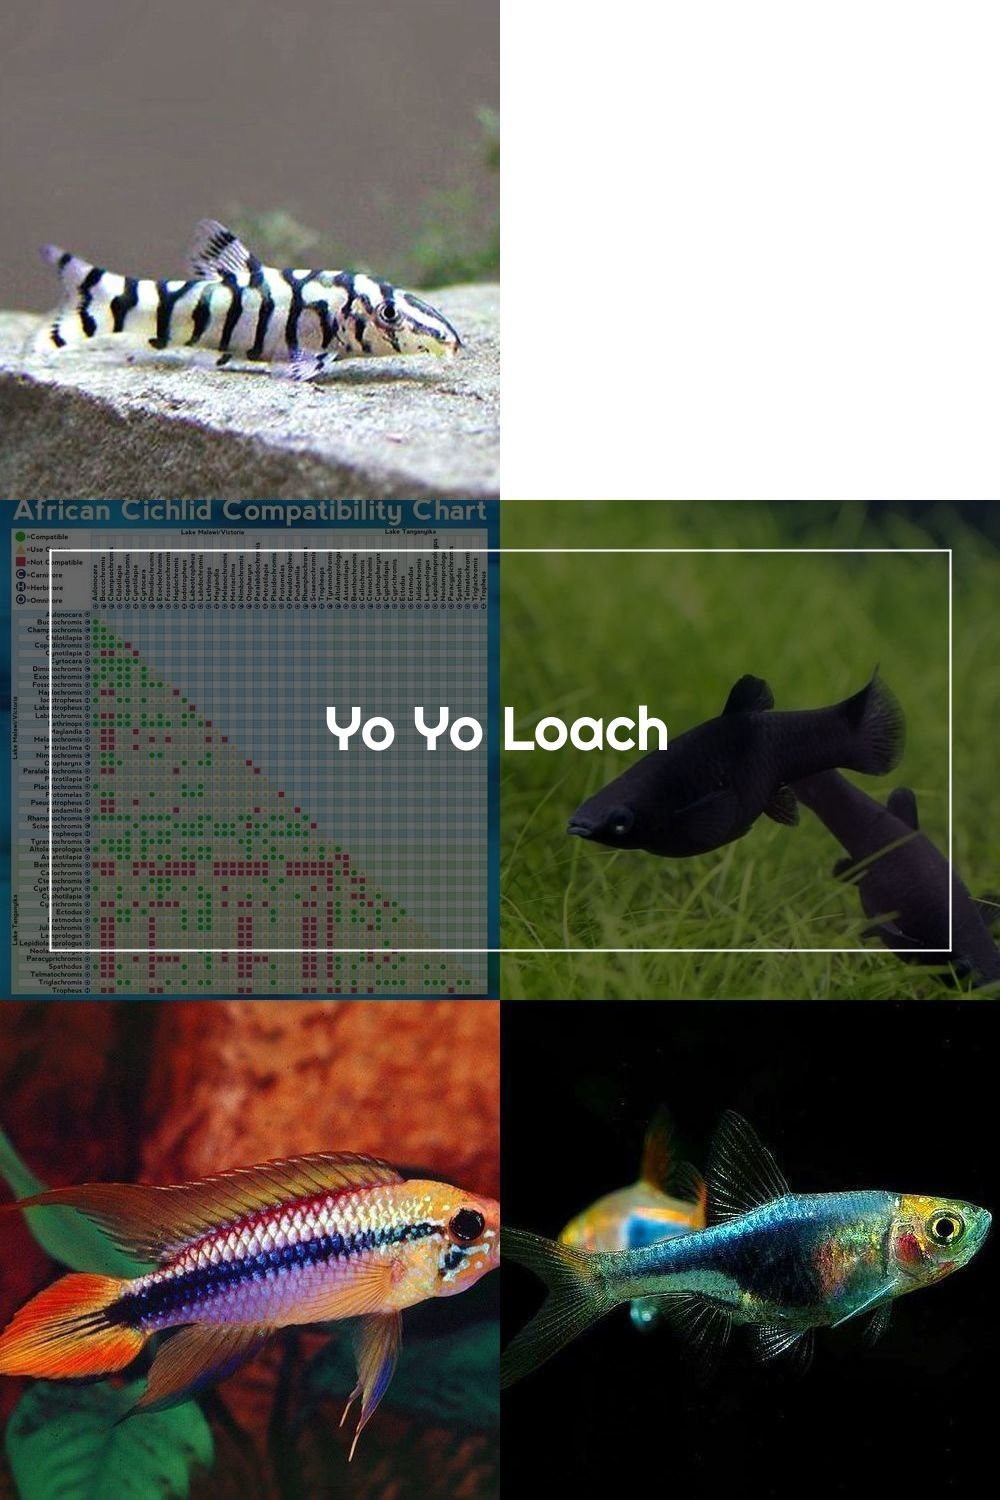 The Yoyo Loach Is A Freshwater Fish It Originates In The Slow Running And Still Waters Of India And Pakistan Whence The Name Pakistani Loach It Is Commonly F